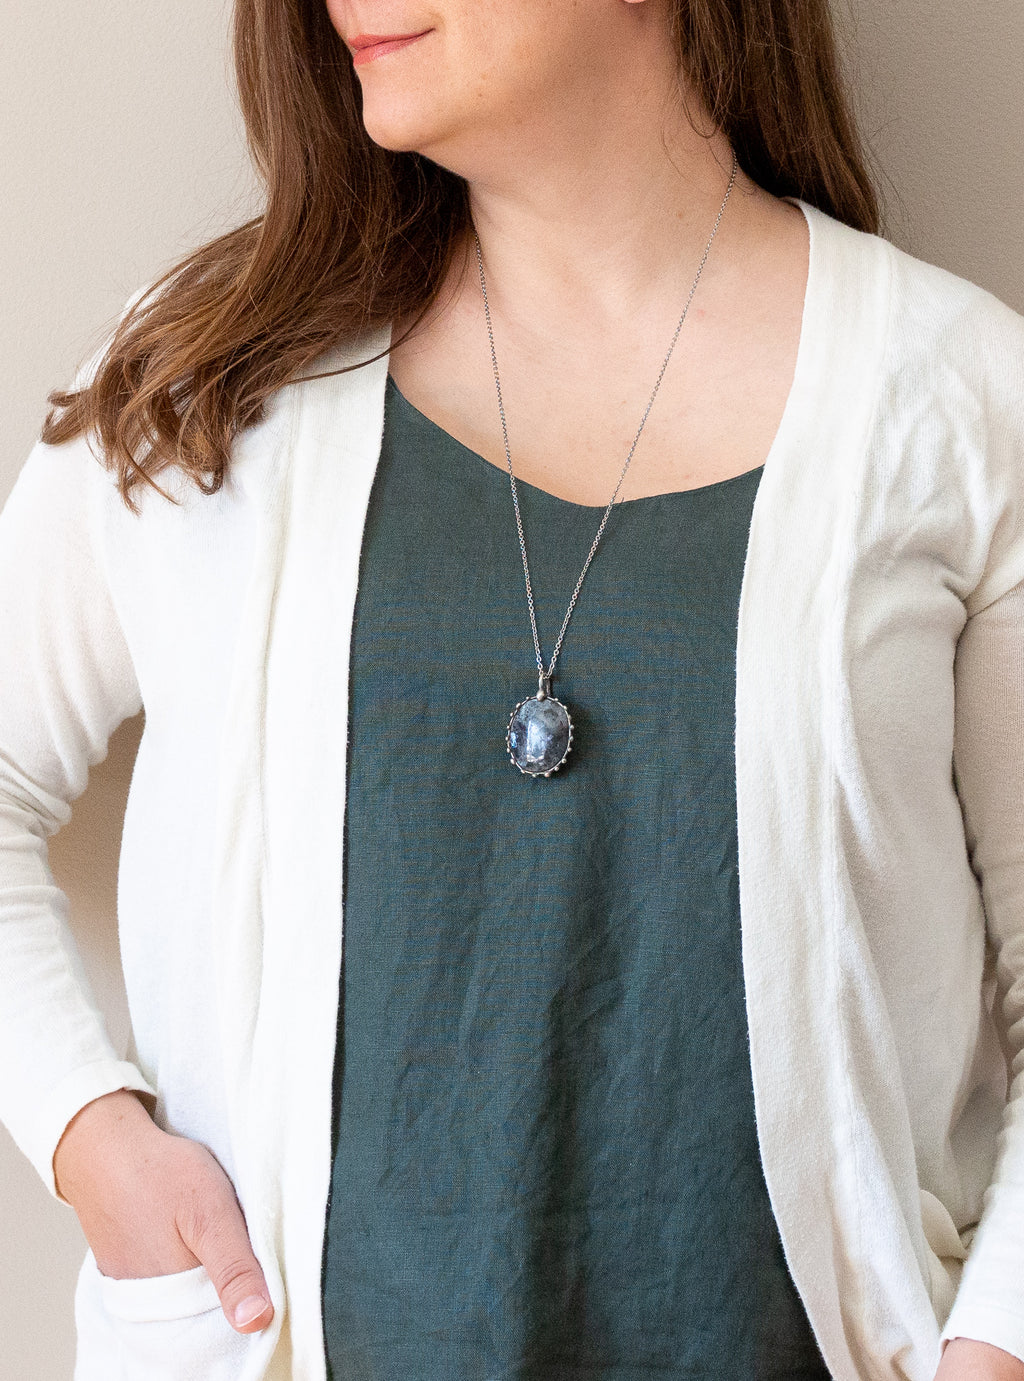 raw black and blue moonstone talisman gemstone necklace on woman in blue top with white cardigan